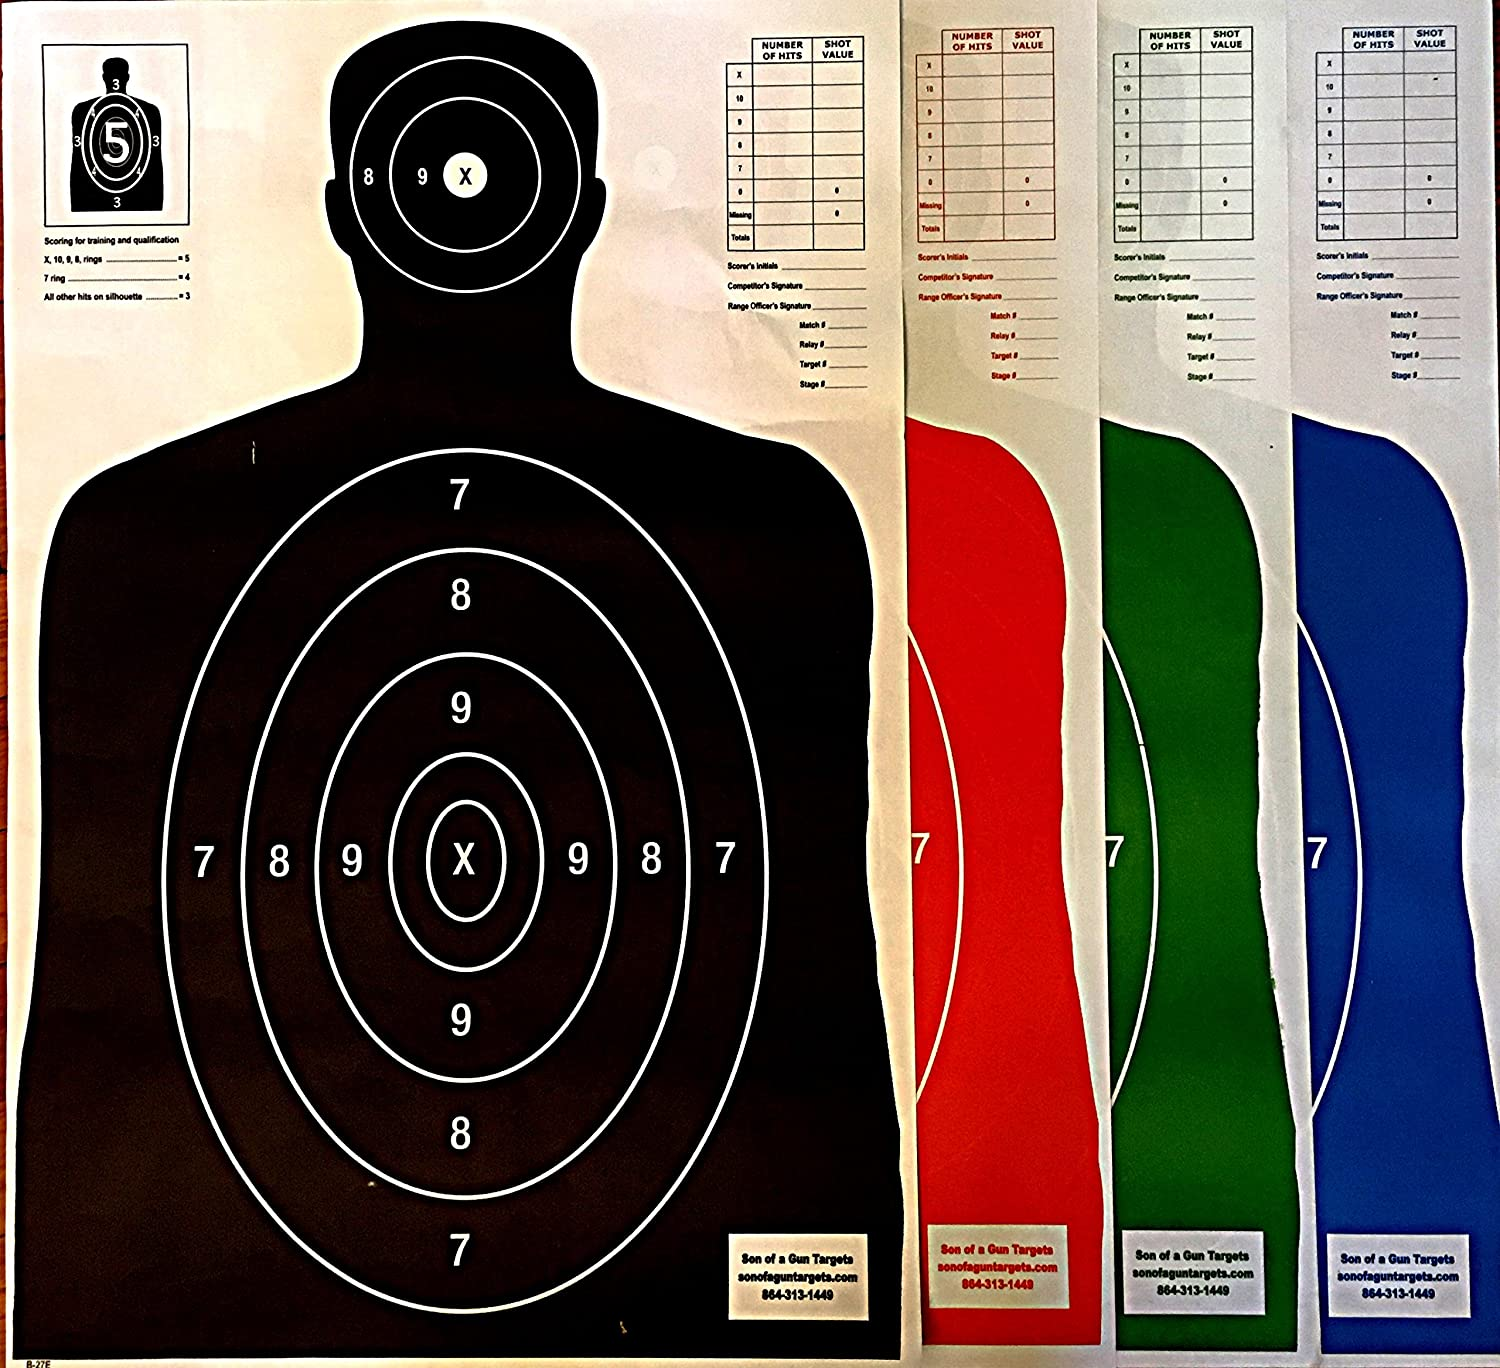 Son of A Gun Paper Shooting Targets, HIGH Shot Placement Visibility, Life  Size B-27 Silhouettes, Four Color Combo Package, 25 Each-100 Total Count,